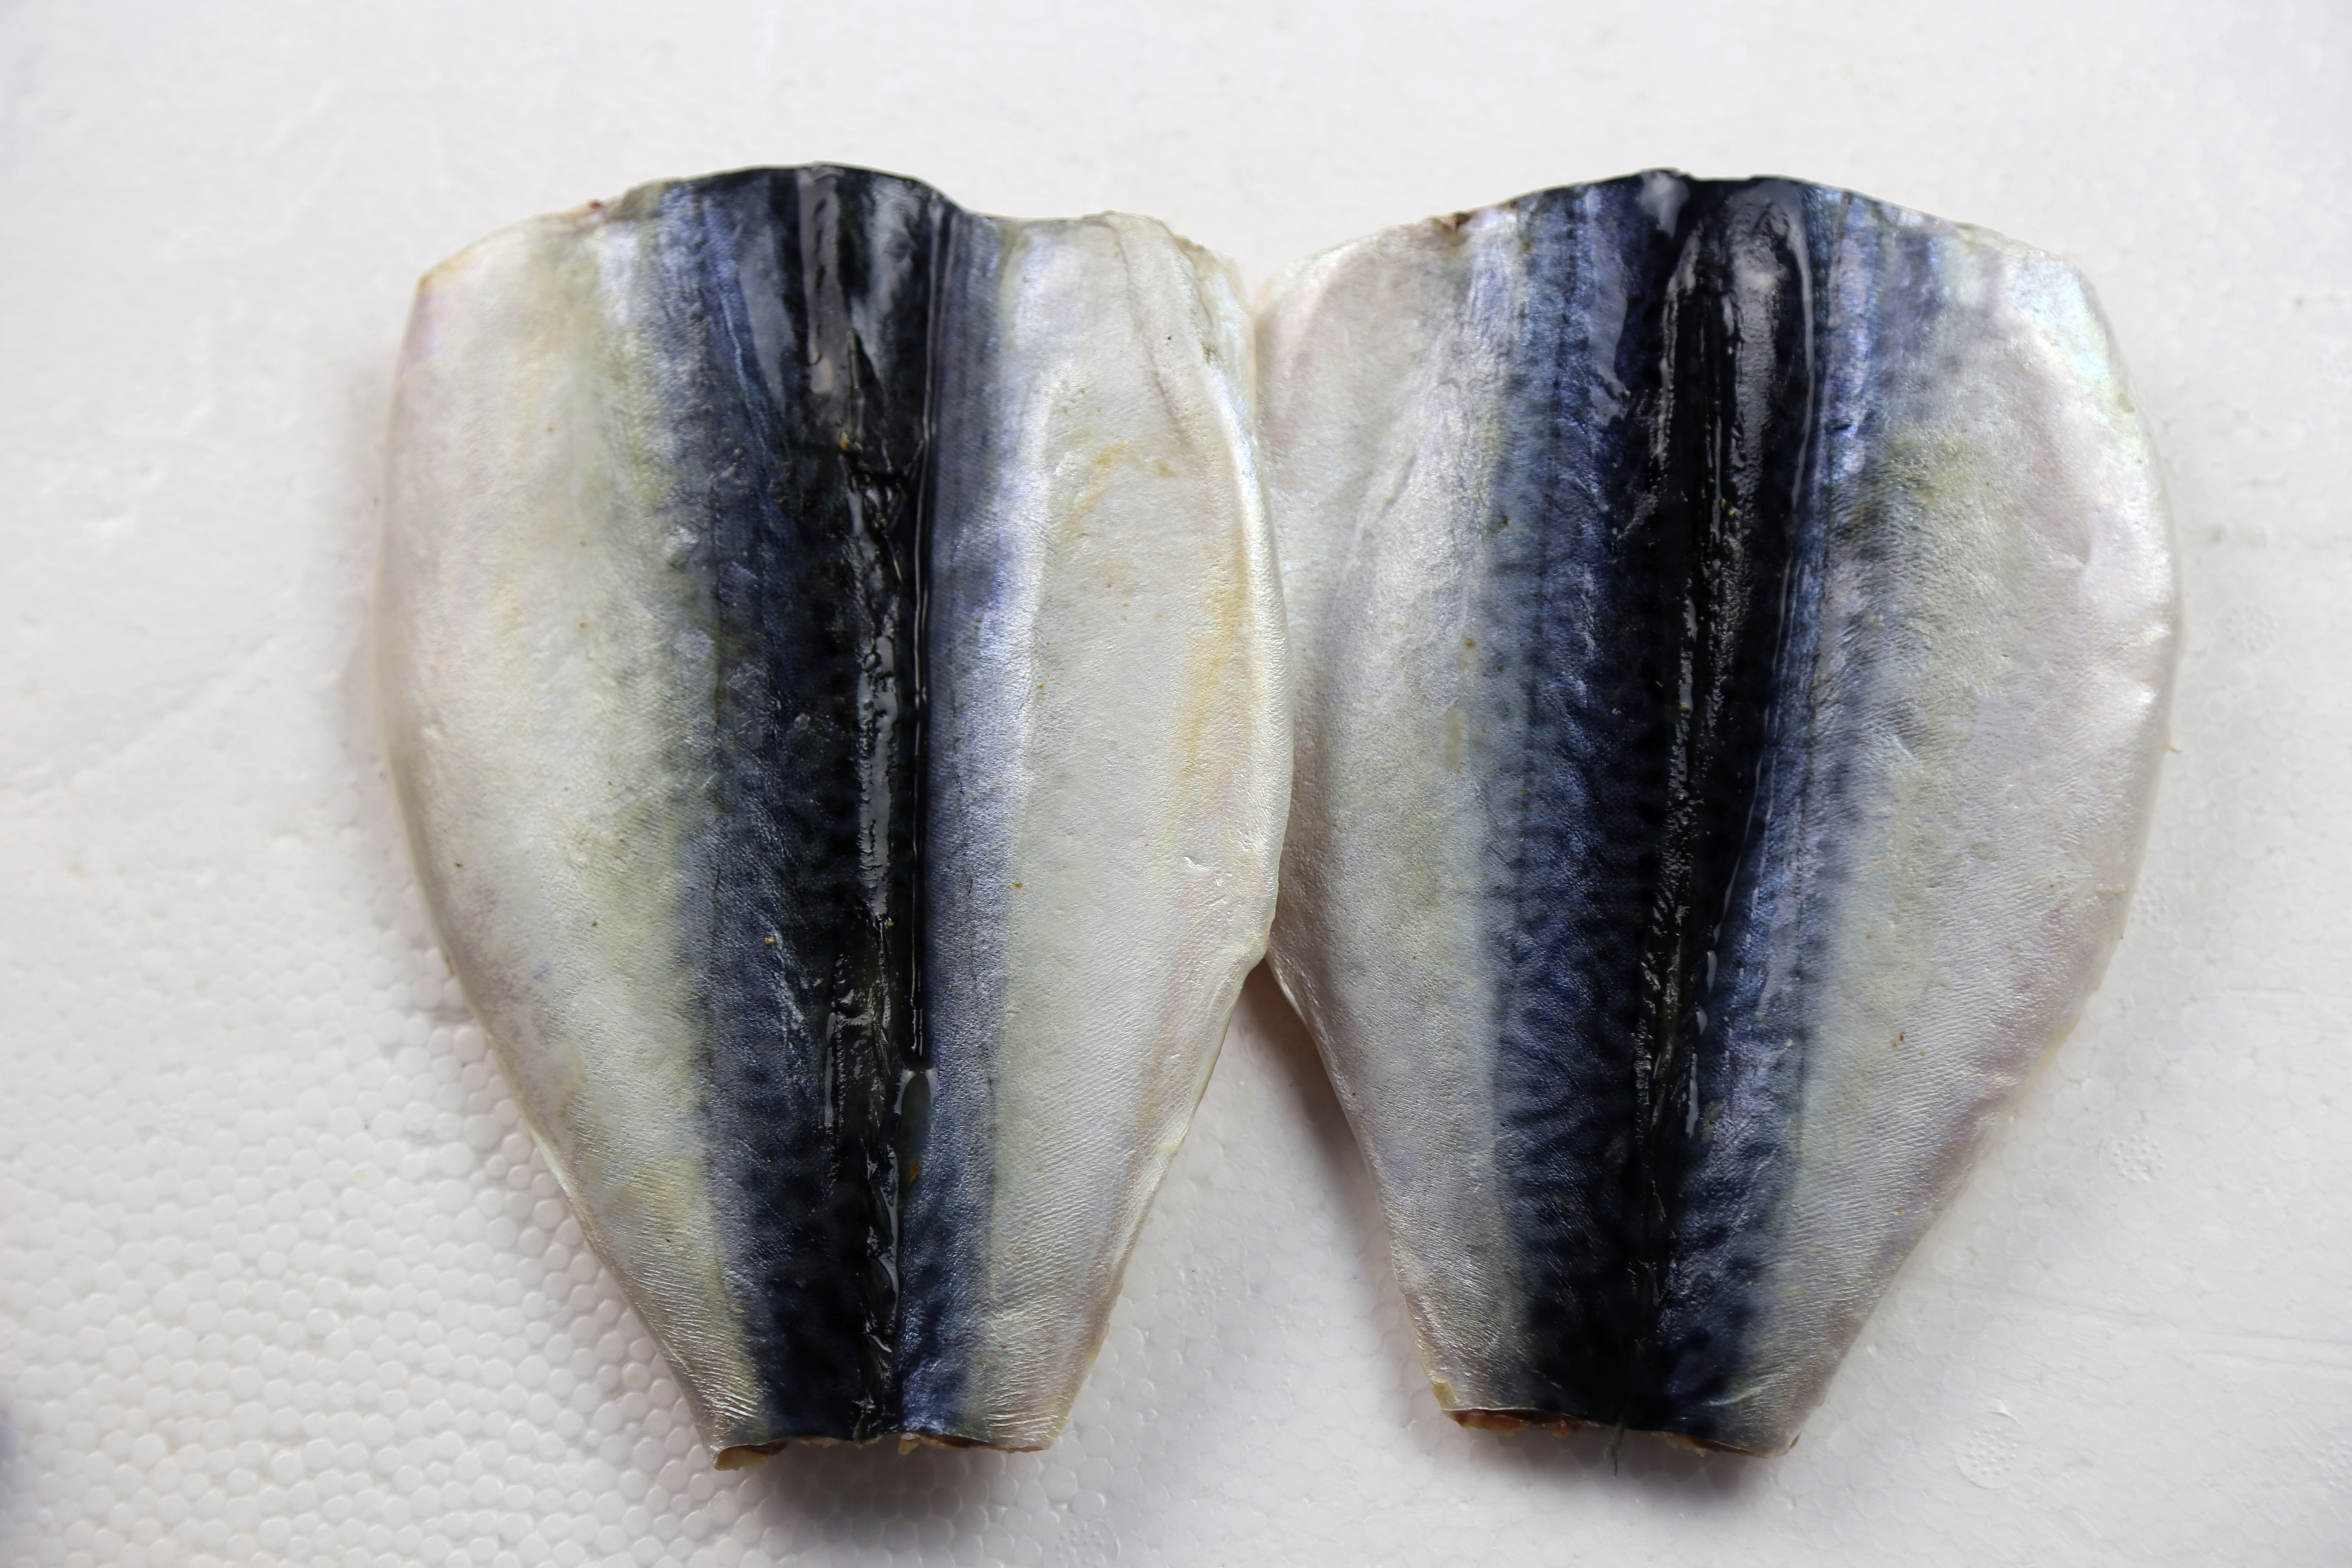 Mackerel Butterfly Fillet in Good Quality